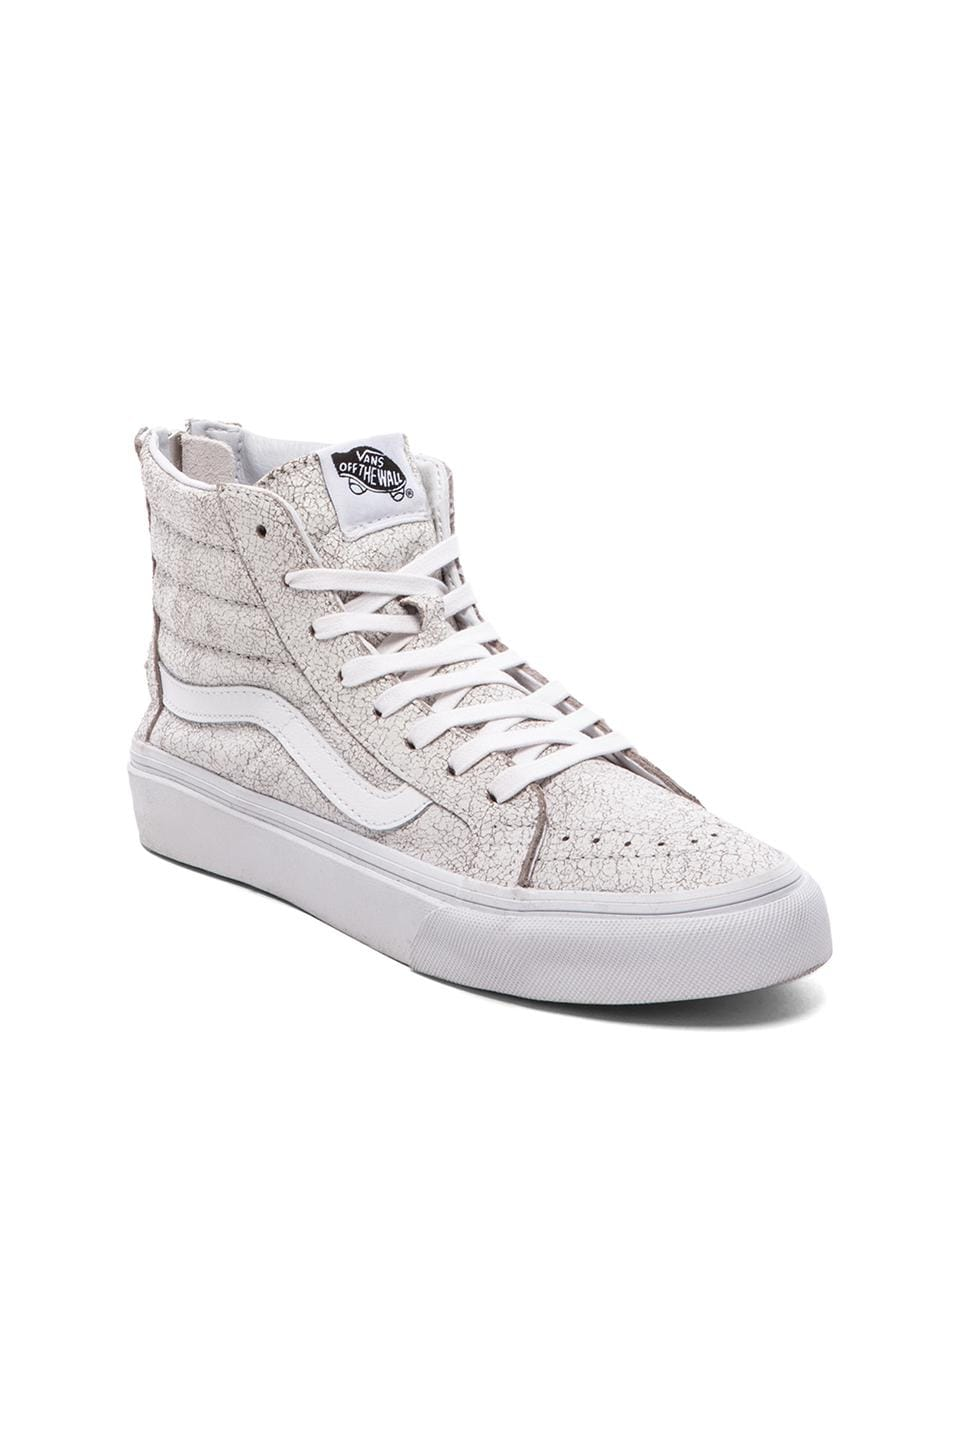 vans sk8 hi white cracked leather